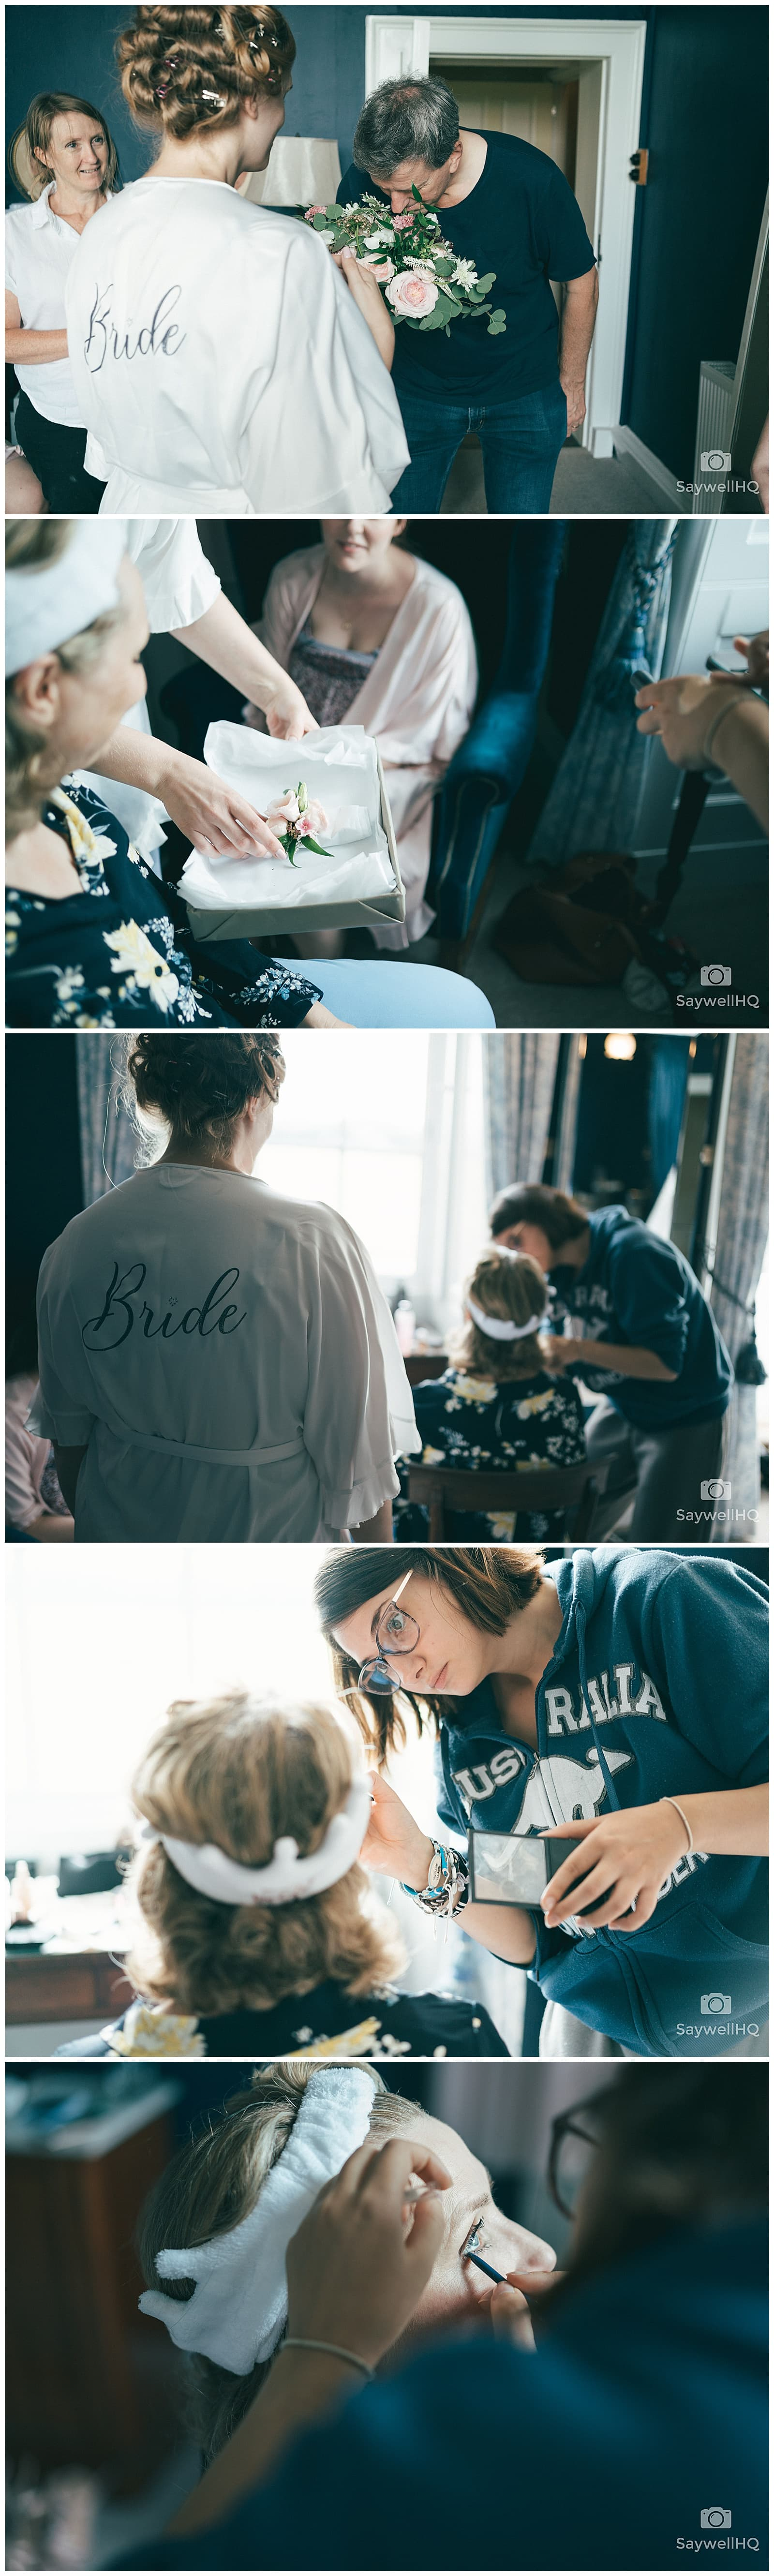 Wedding Photography at Prestwold Hall – bride and her bridesmaids getting ready in the morning of the wedding